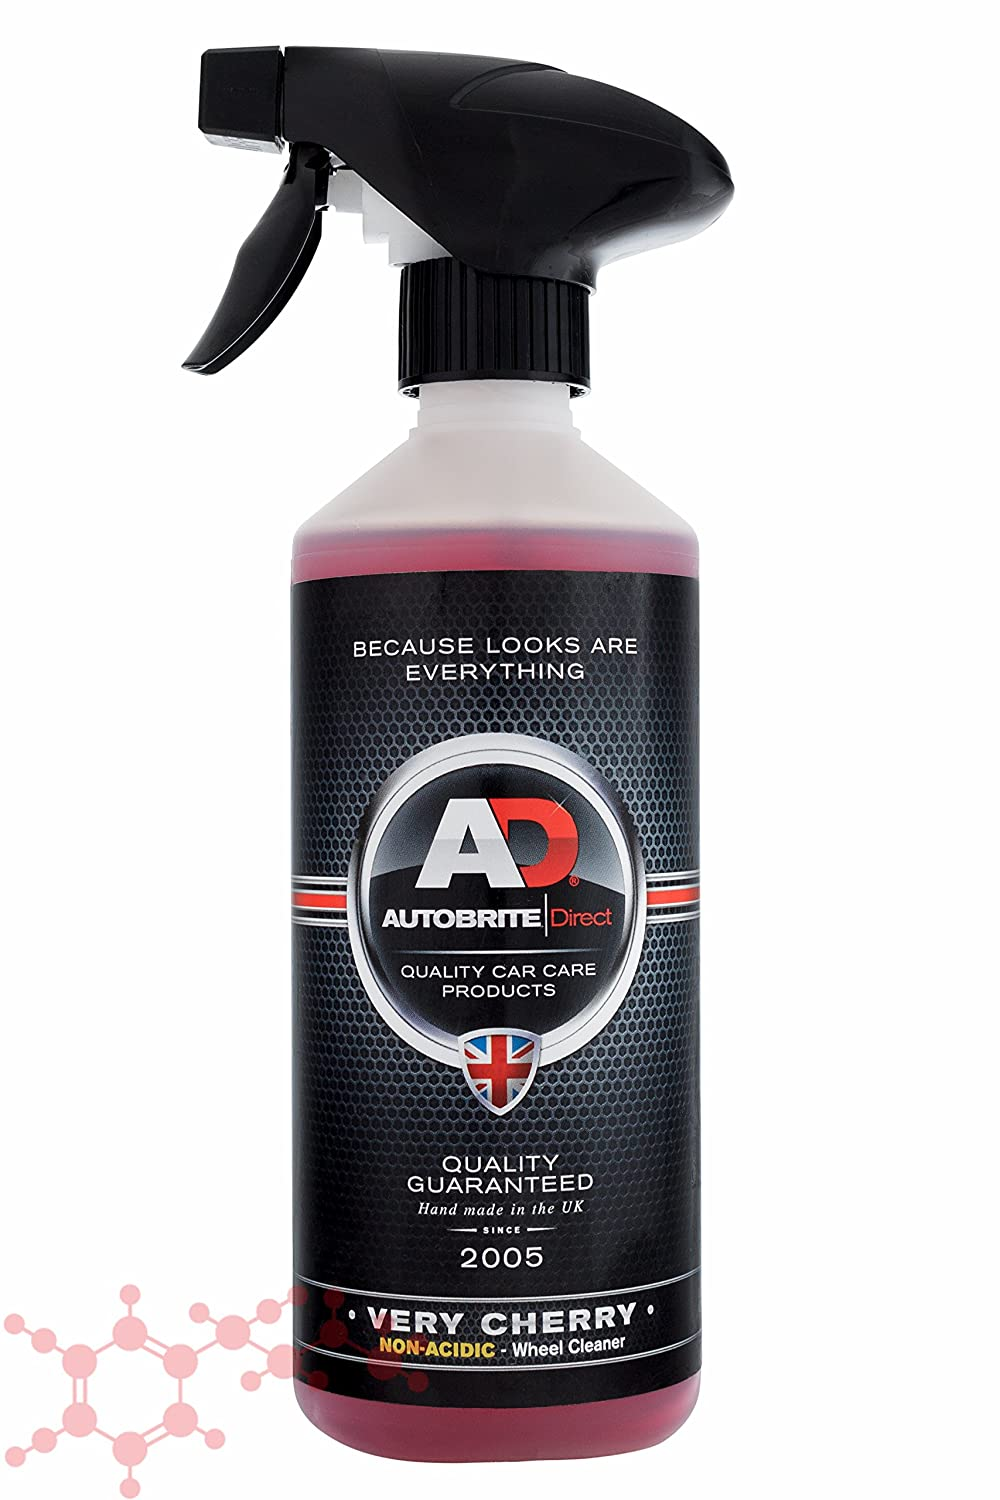 Autobrite Direct Very Cherry Limpiador para ruedas, 500 l: Amazon.es: Coche y moto